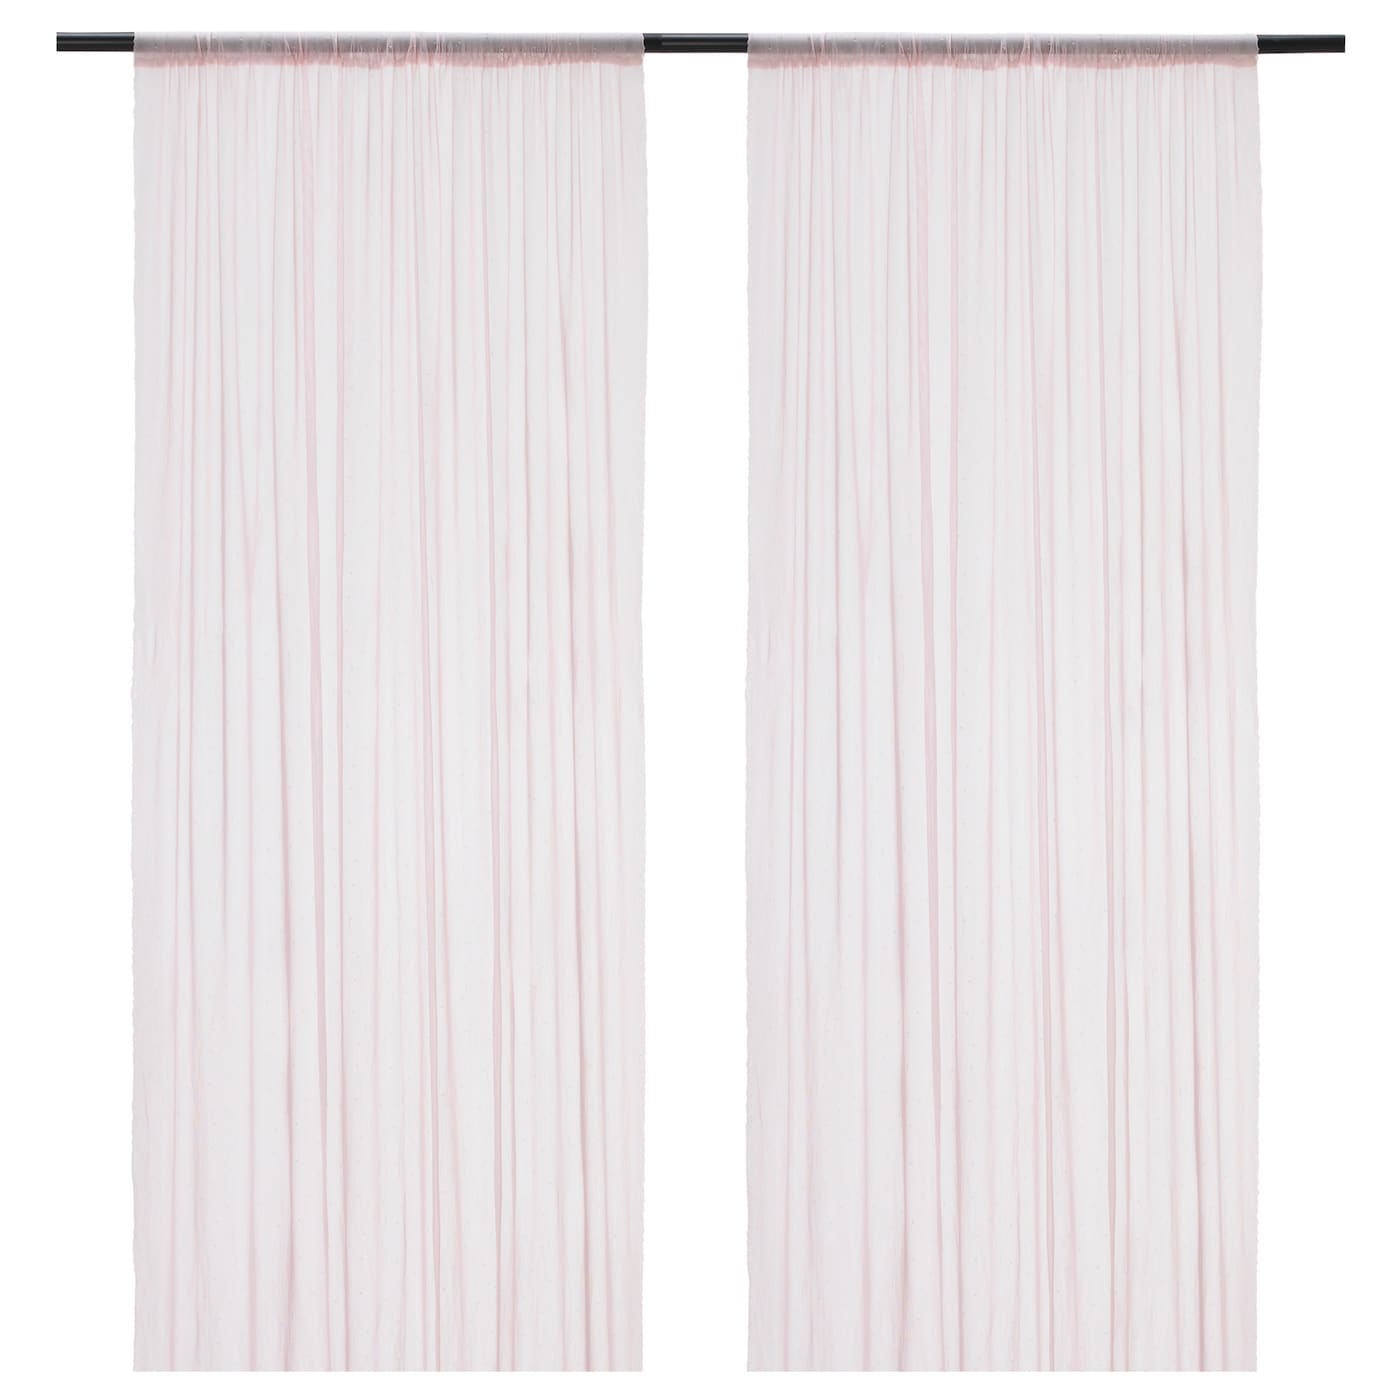 IKEA HILDRUN sheer curtains, 1 pair